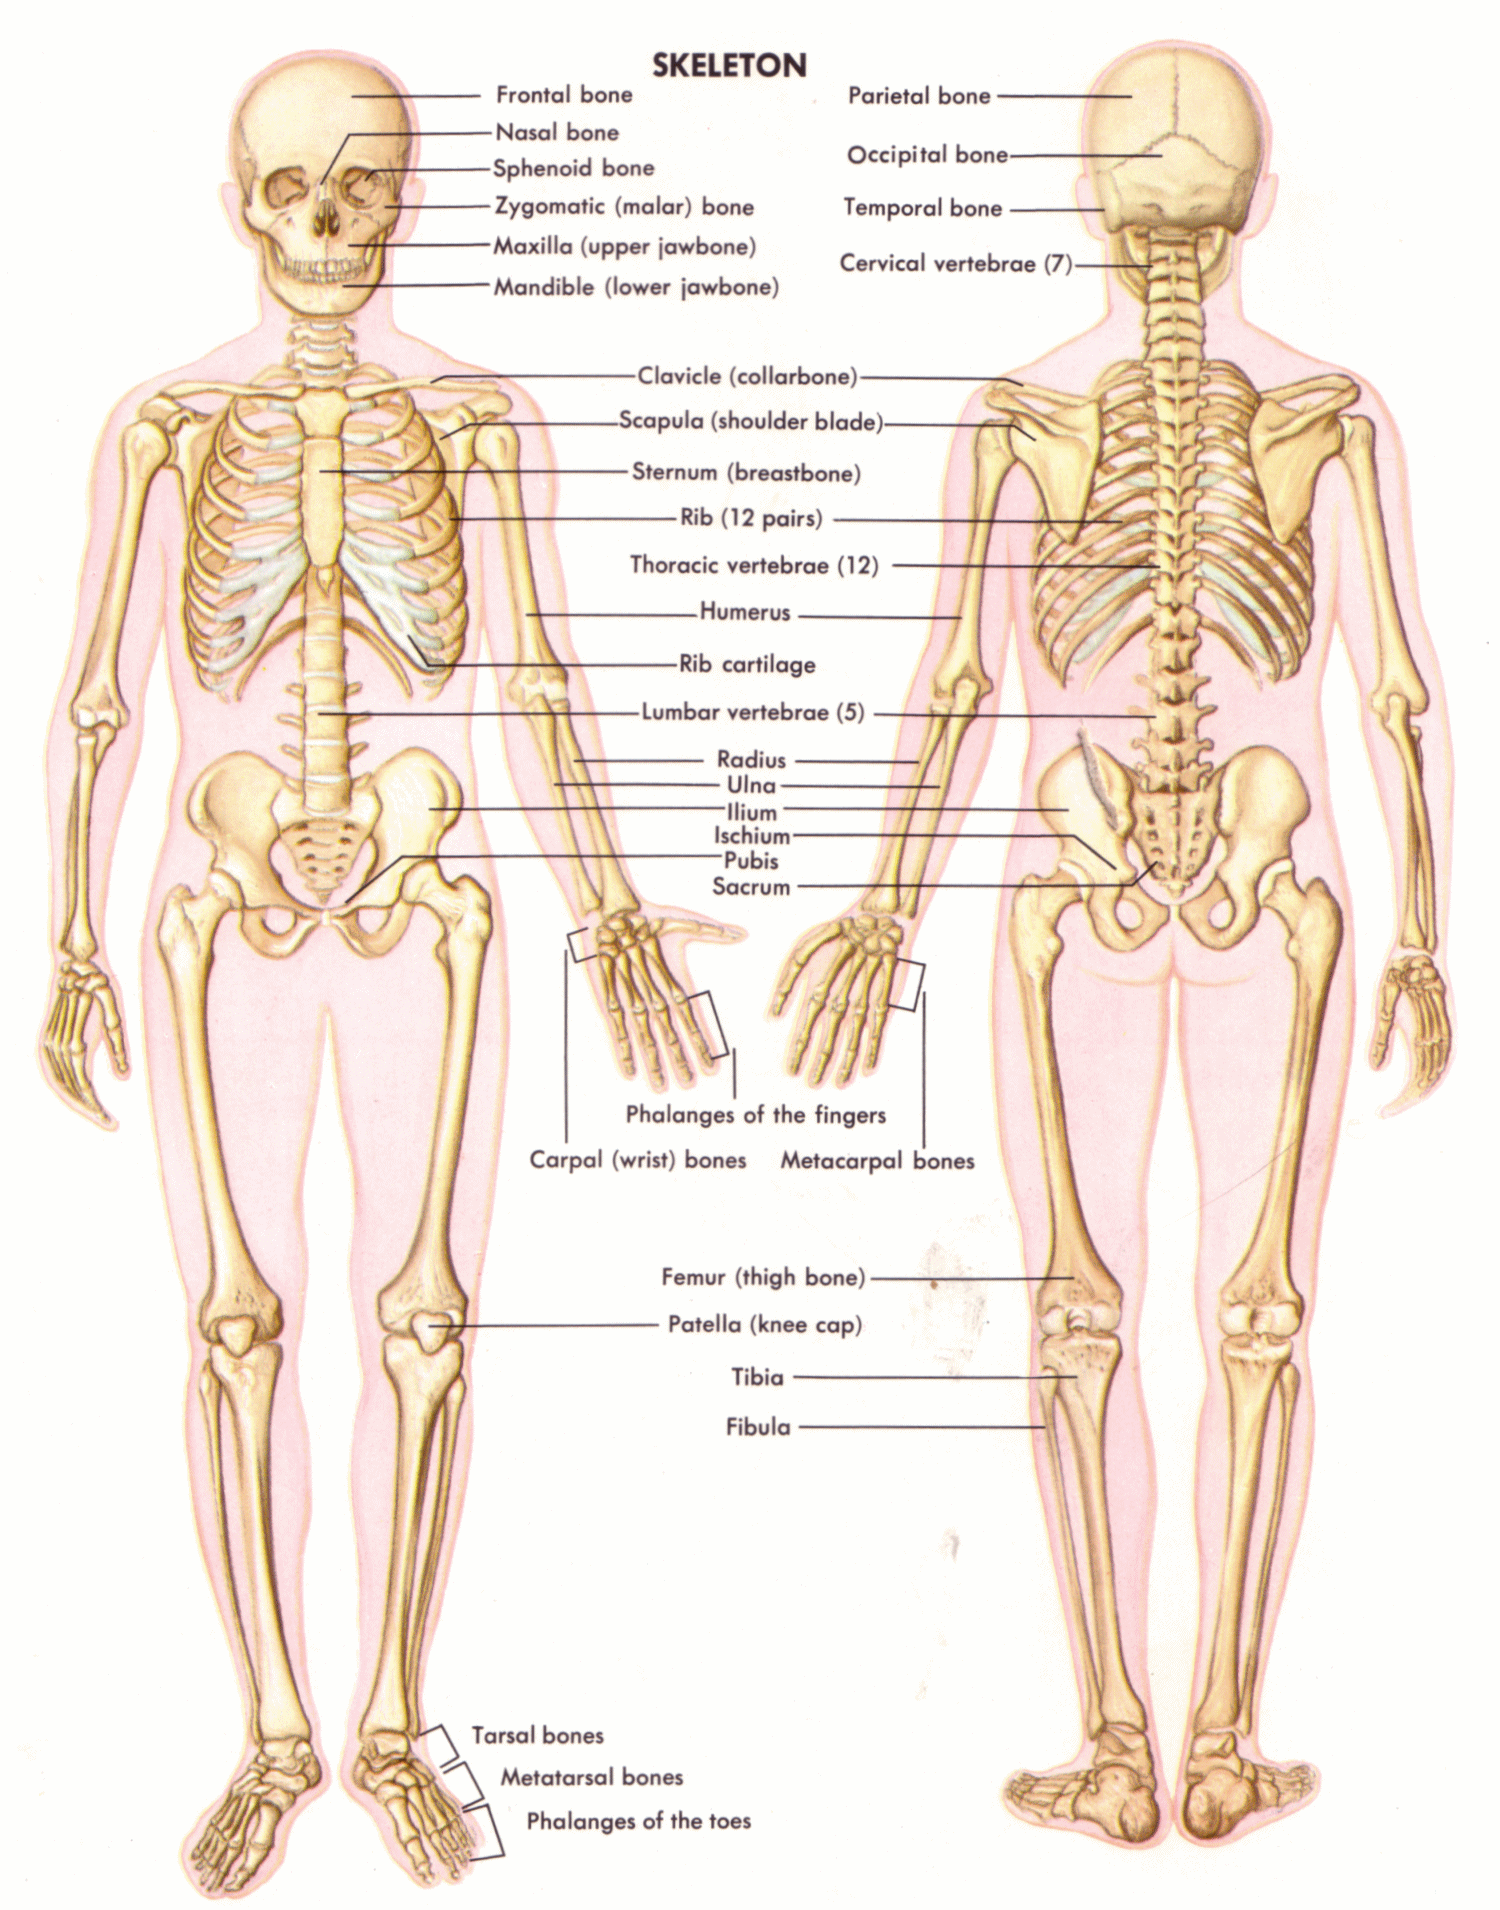 Uncategorized Skeletal System Worksheet Answers the axial skeleton is most important part of skeletal system as without it the